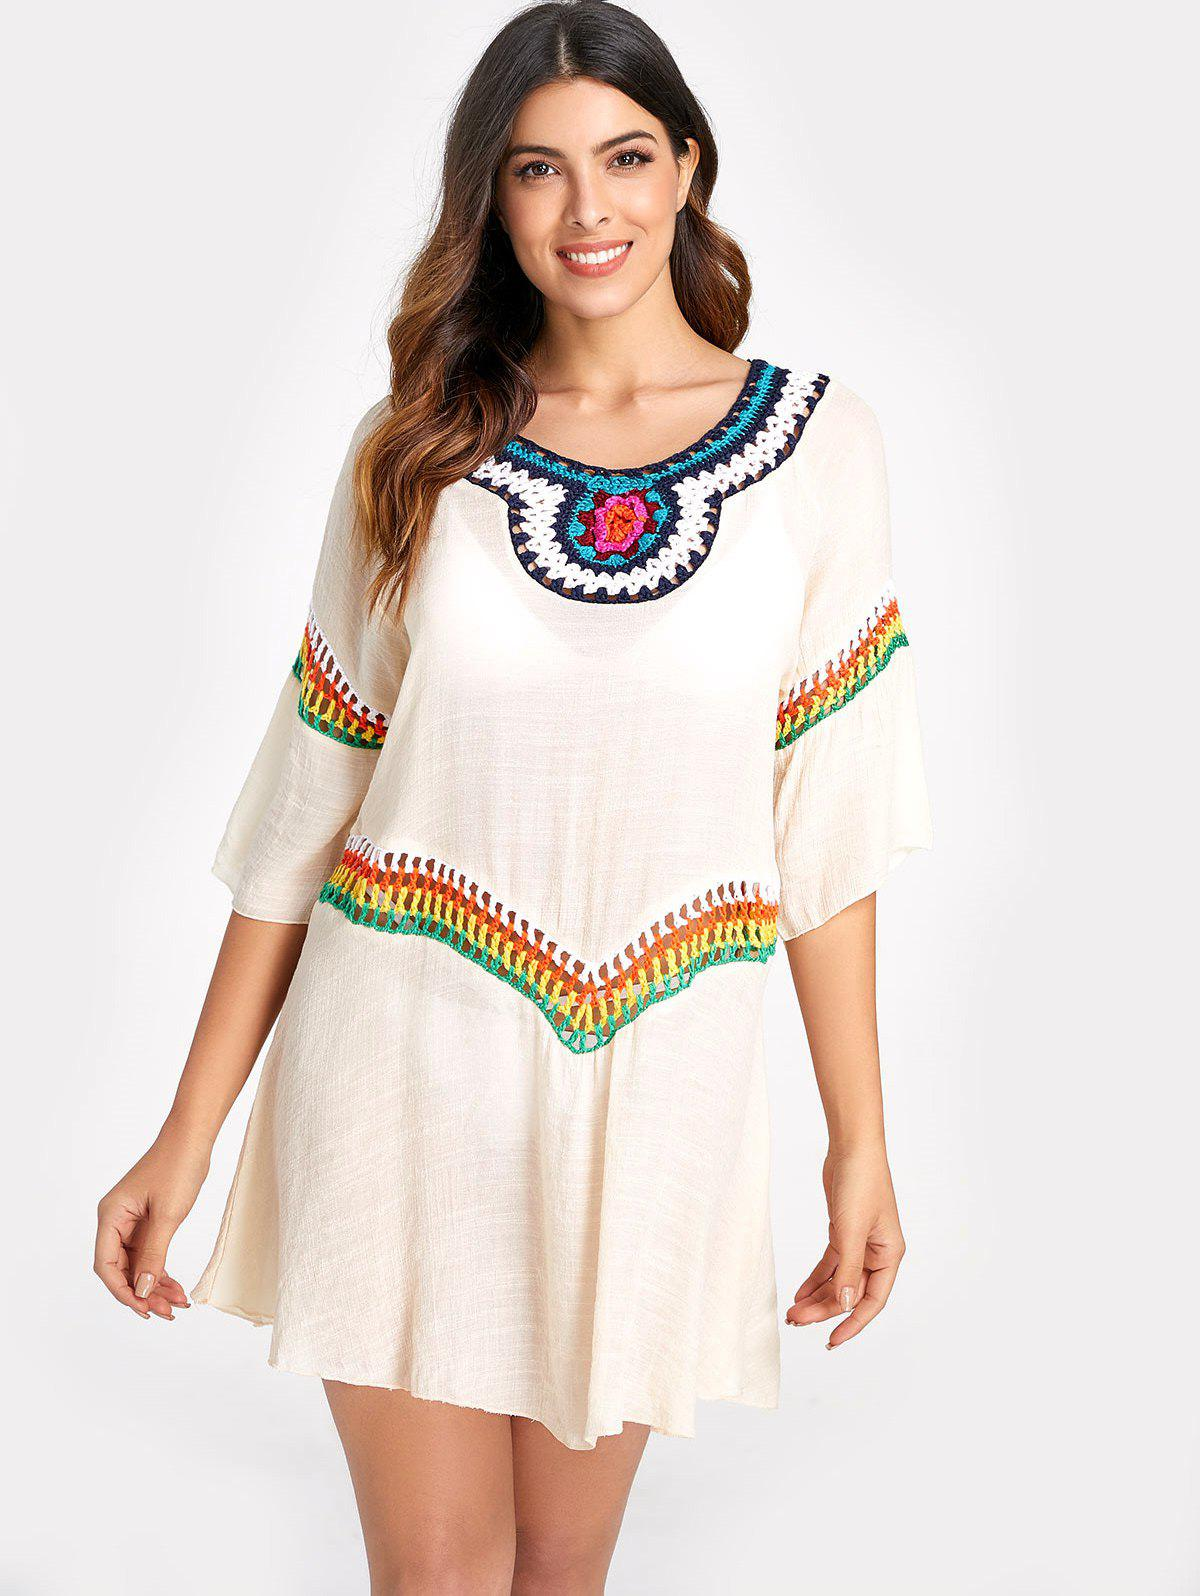 Unique Raglan Sleeve Cover Up Dress with Crochet